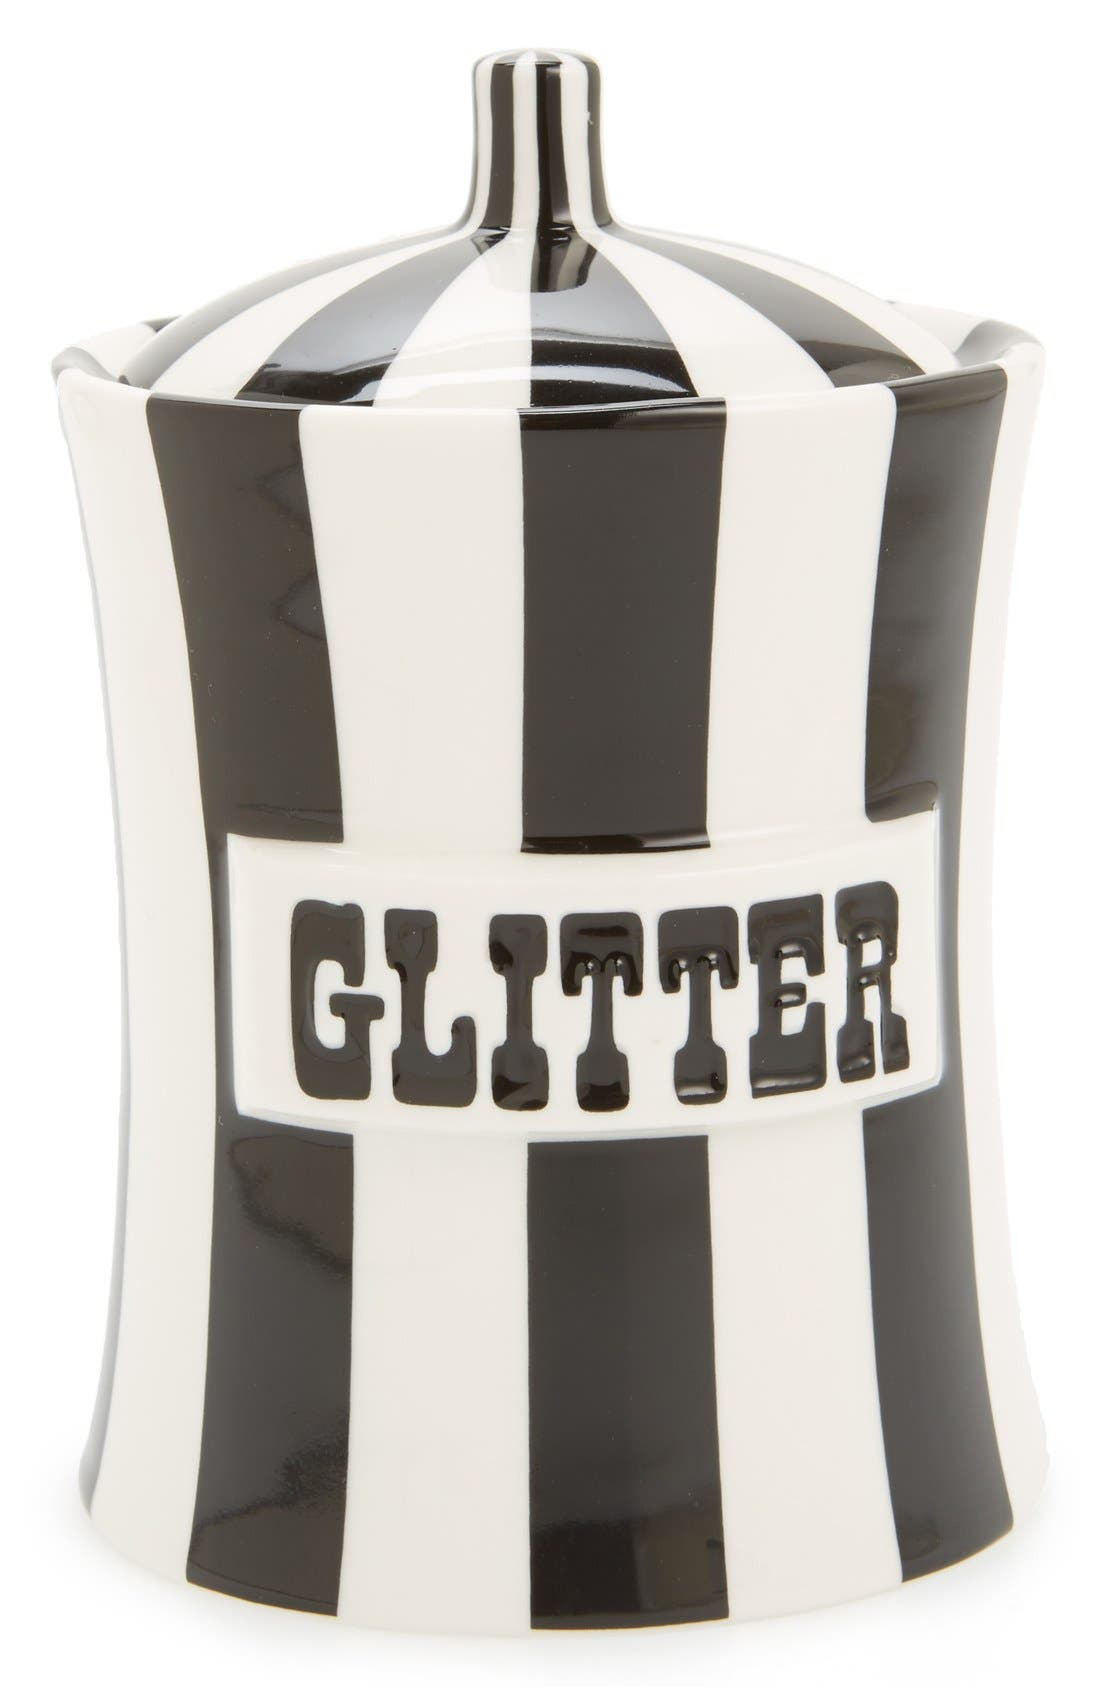 Alternate Image 1 Selected - Jonathan Adler 'Glitter' Porcelain Canister